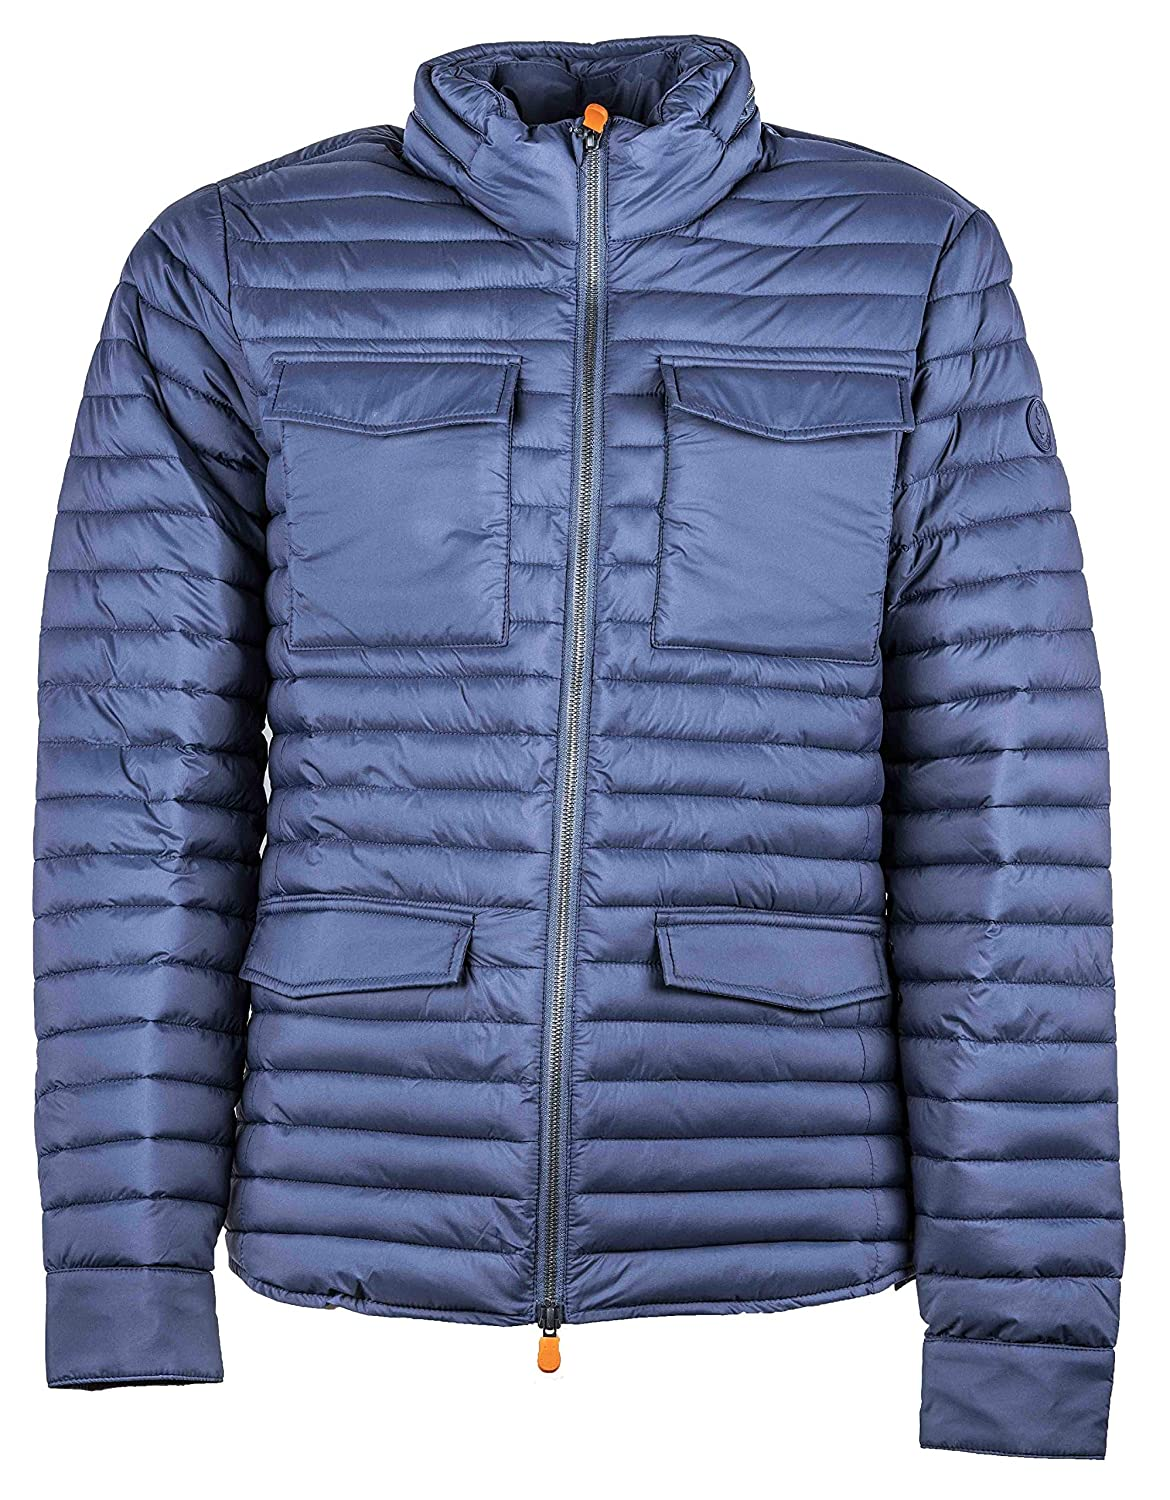 bleu L Save the duck Giubbetto hommes noir D3335M MITE8 00001